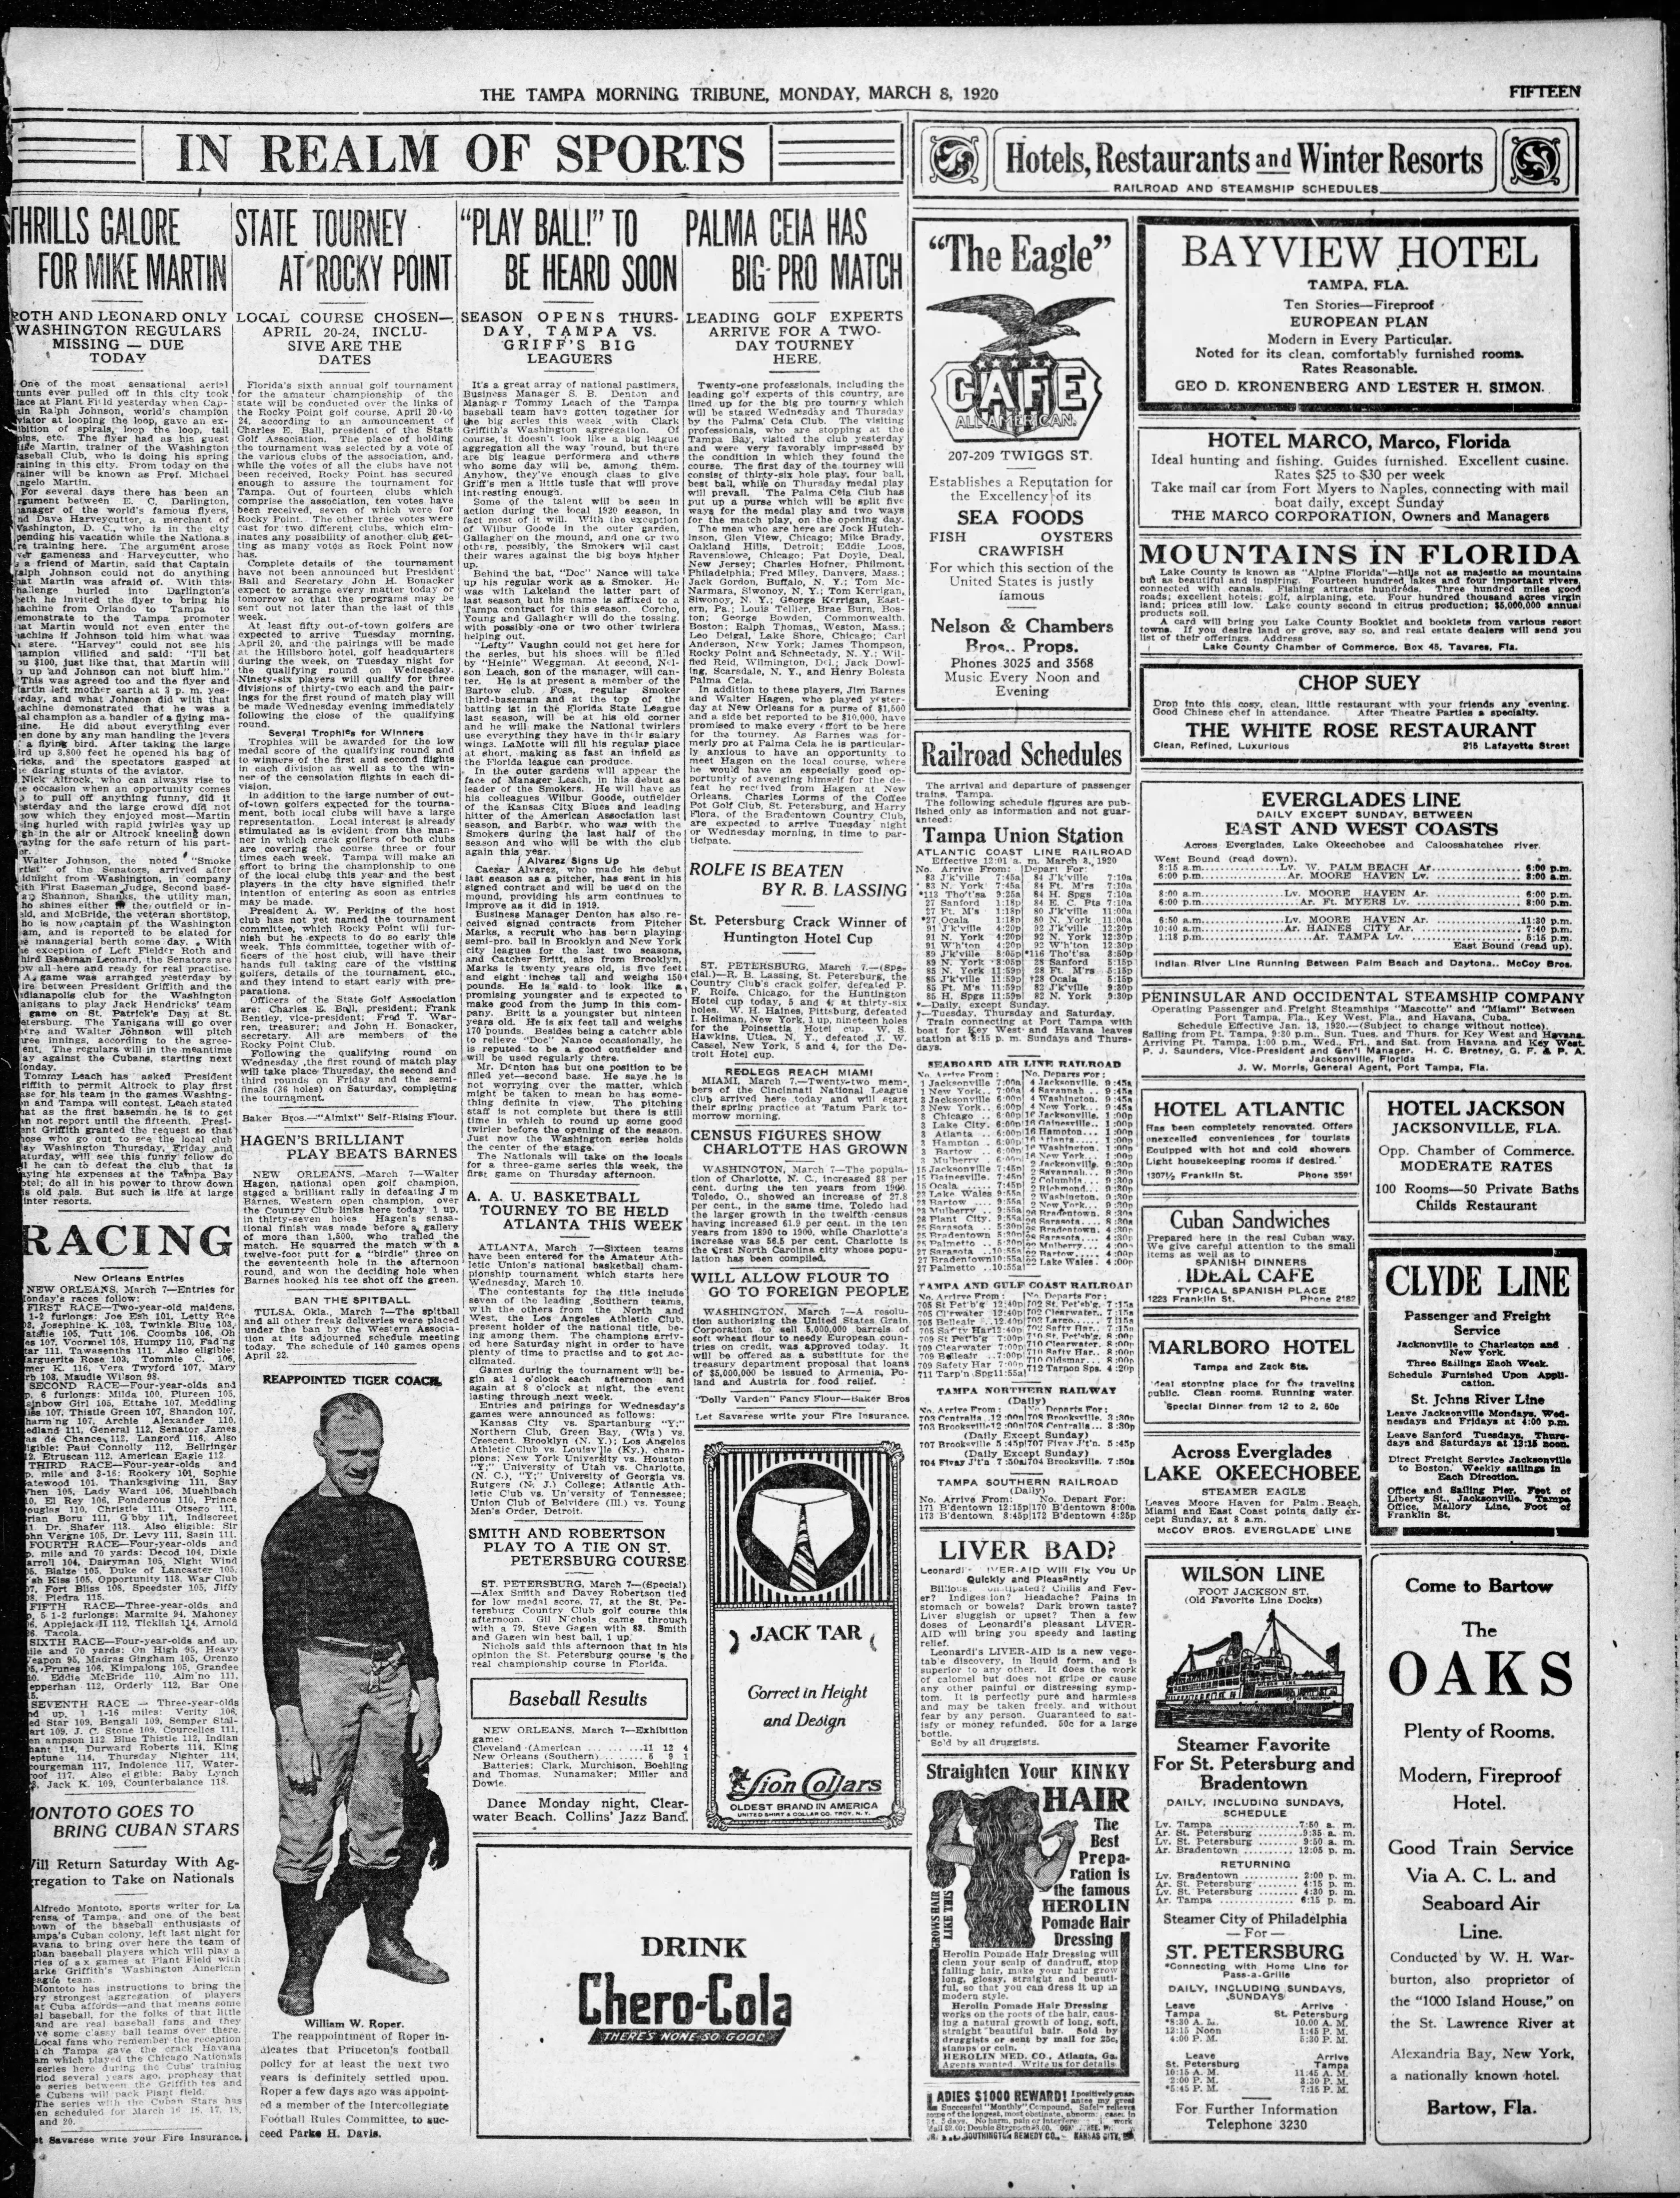 State Tourney at Rocky Point - Mar 8, 1920 Tampa Tribune